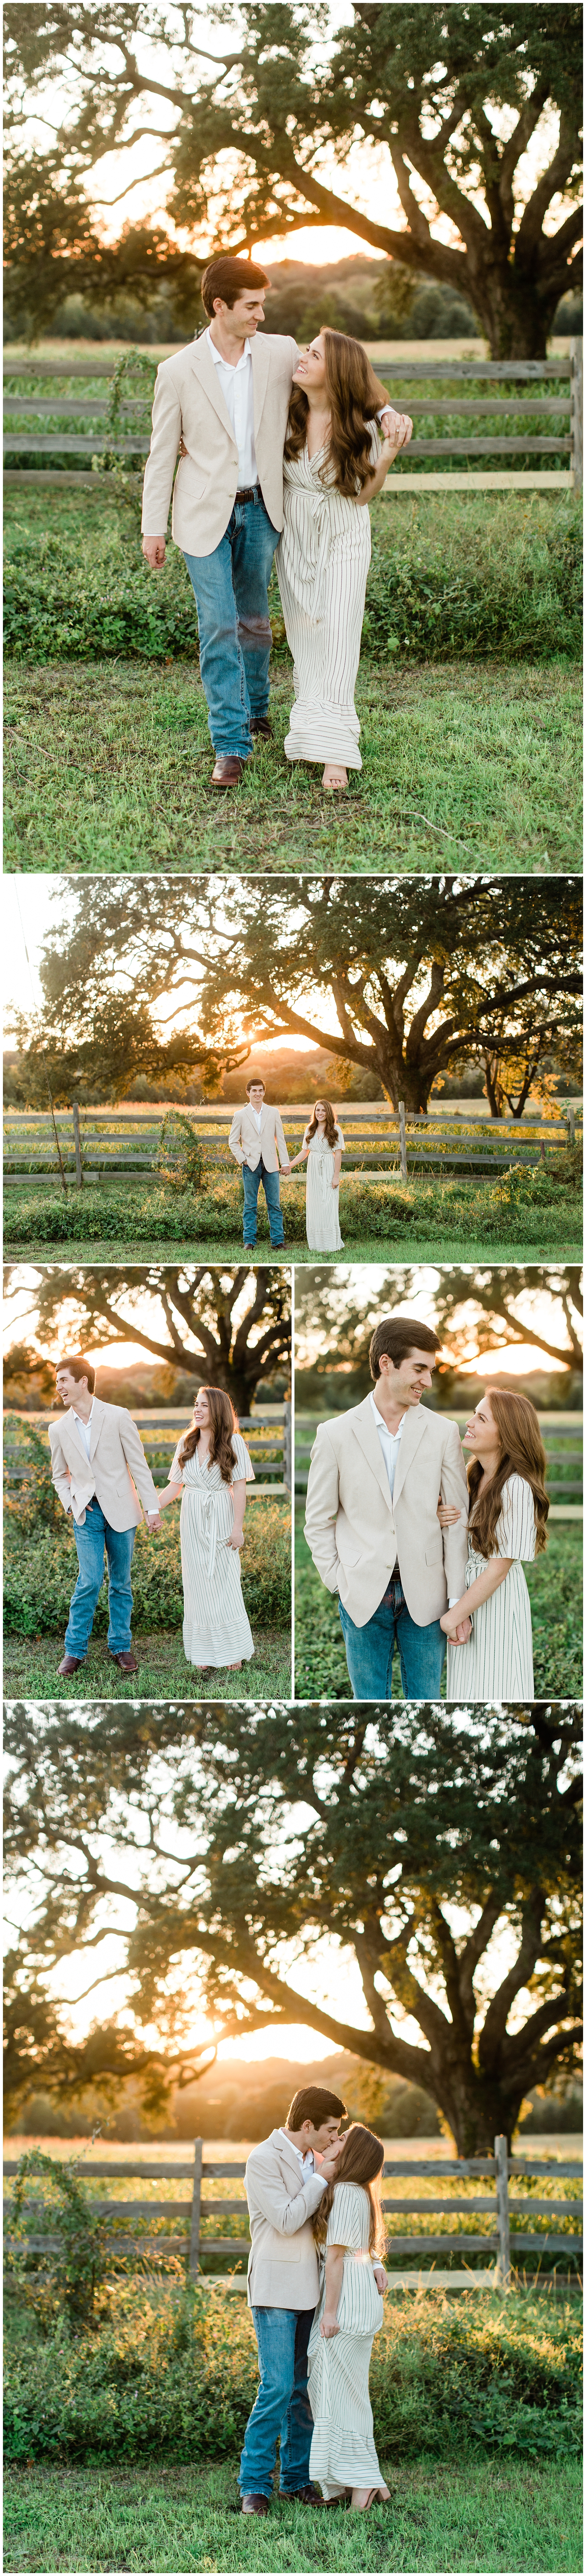 College_Station_Engagement_Session_Kristina_Ross_Photography_0006.jpg